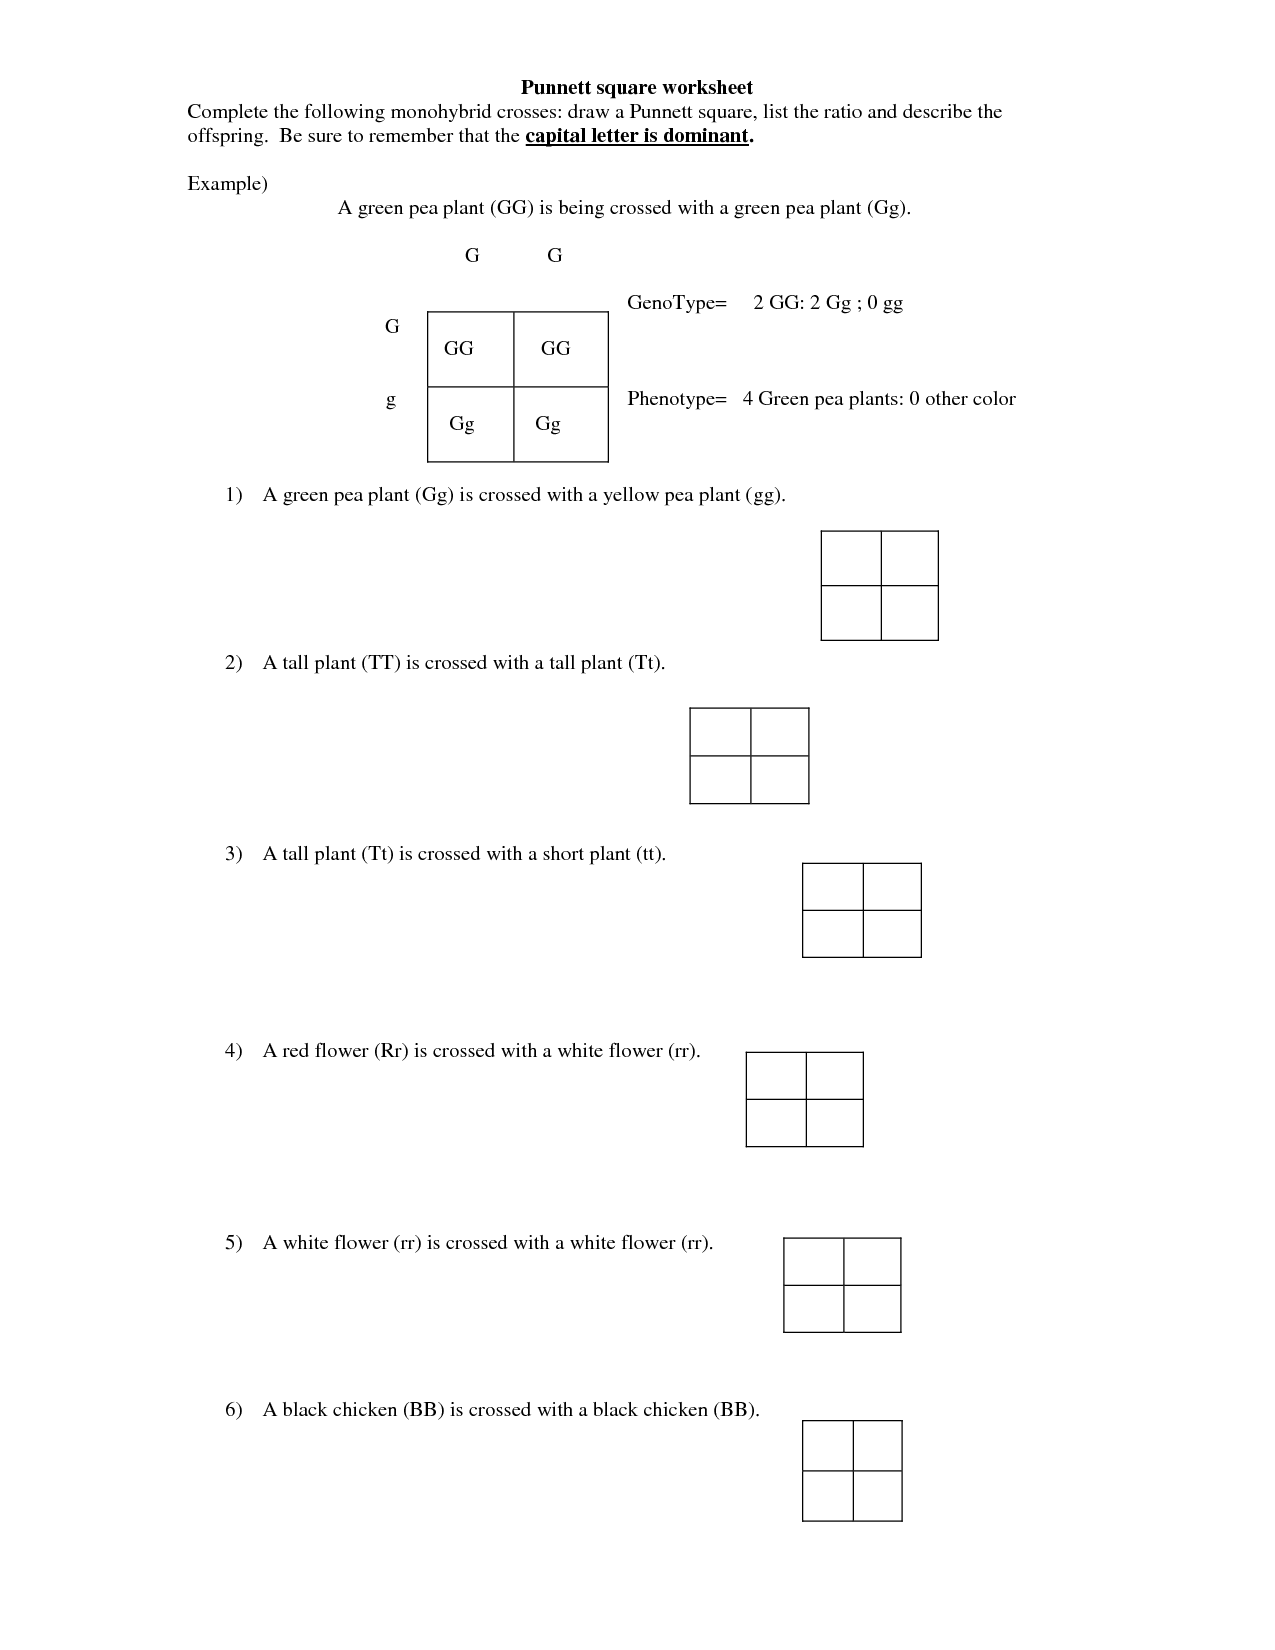 Punnett Square Worksheet 2 Answer Key – Punnett Square Worksheet